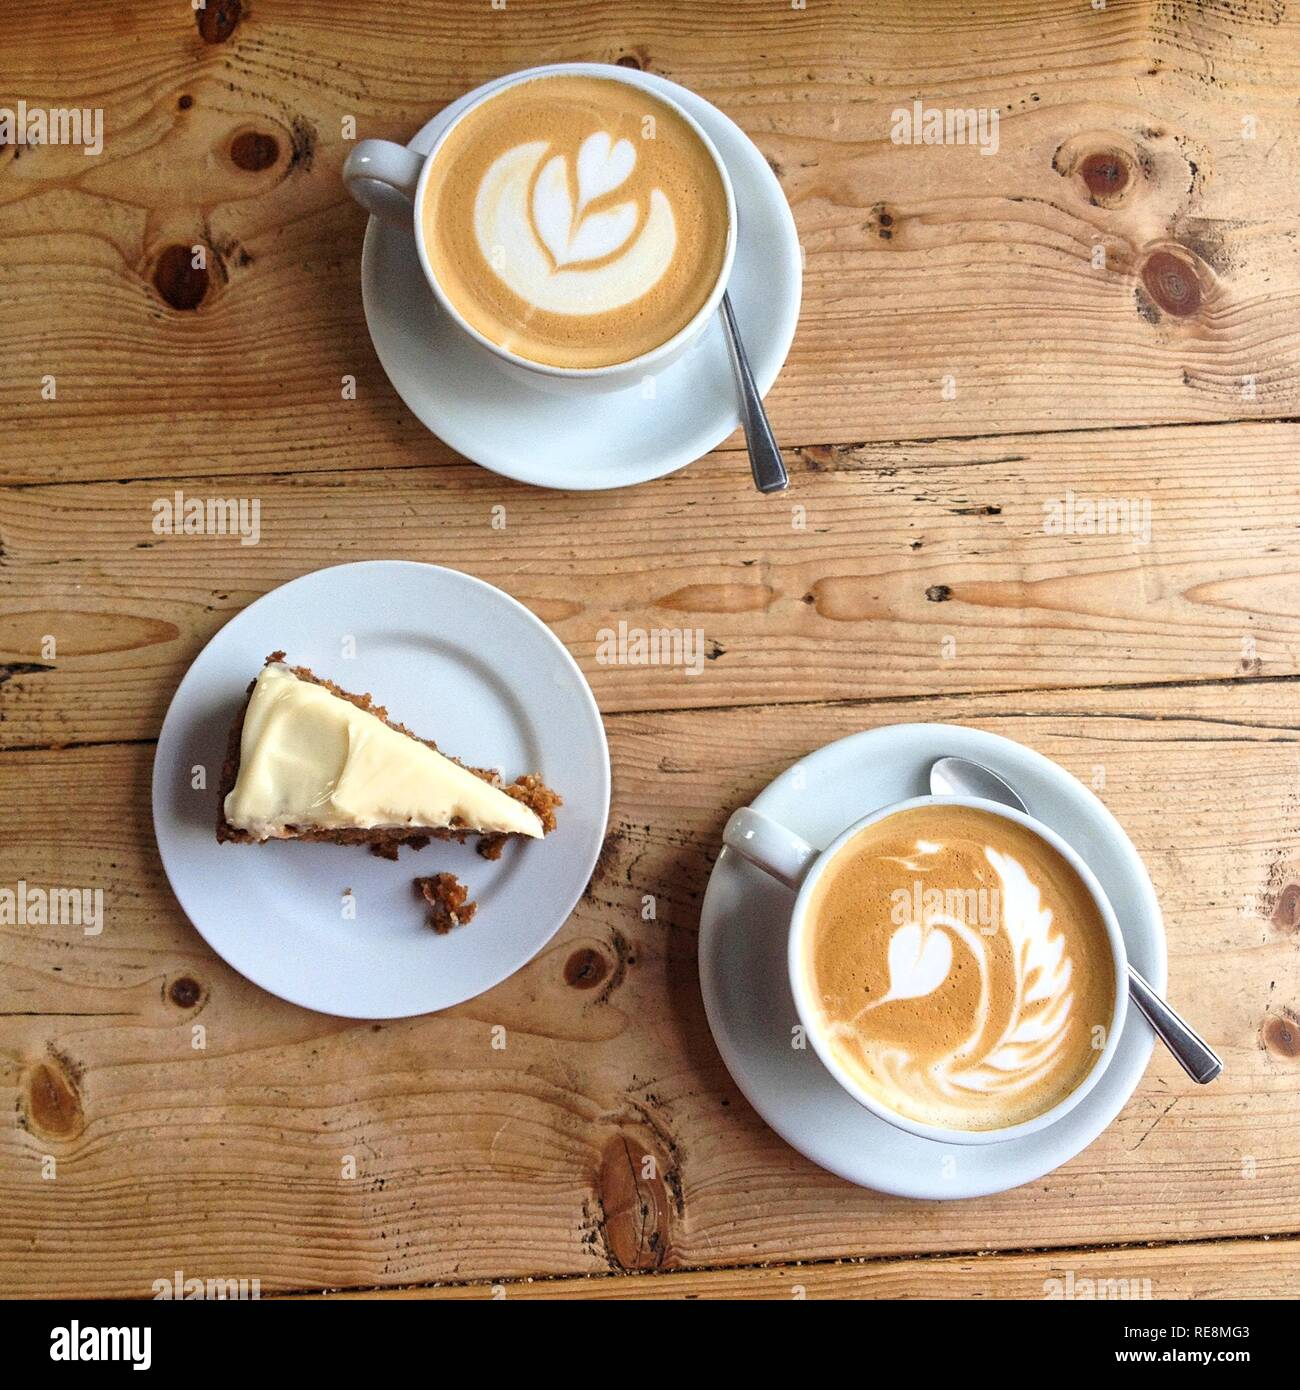 Coffee and cake viewed from above - Stock Image